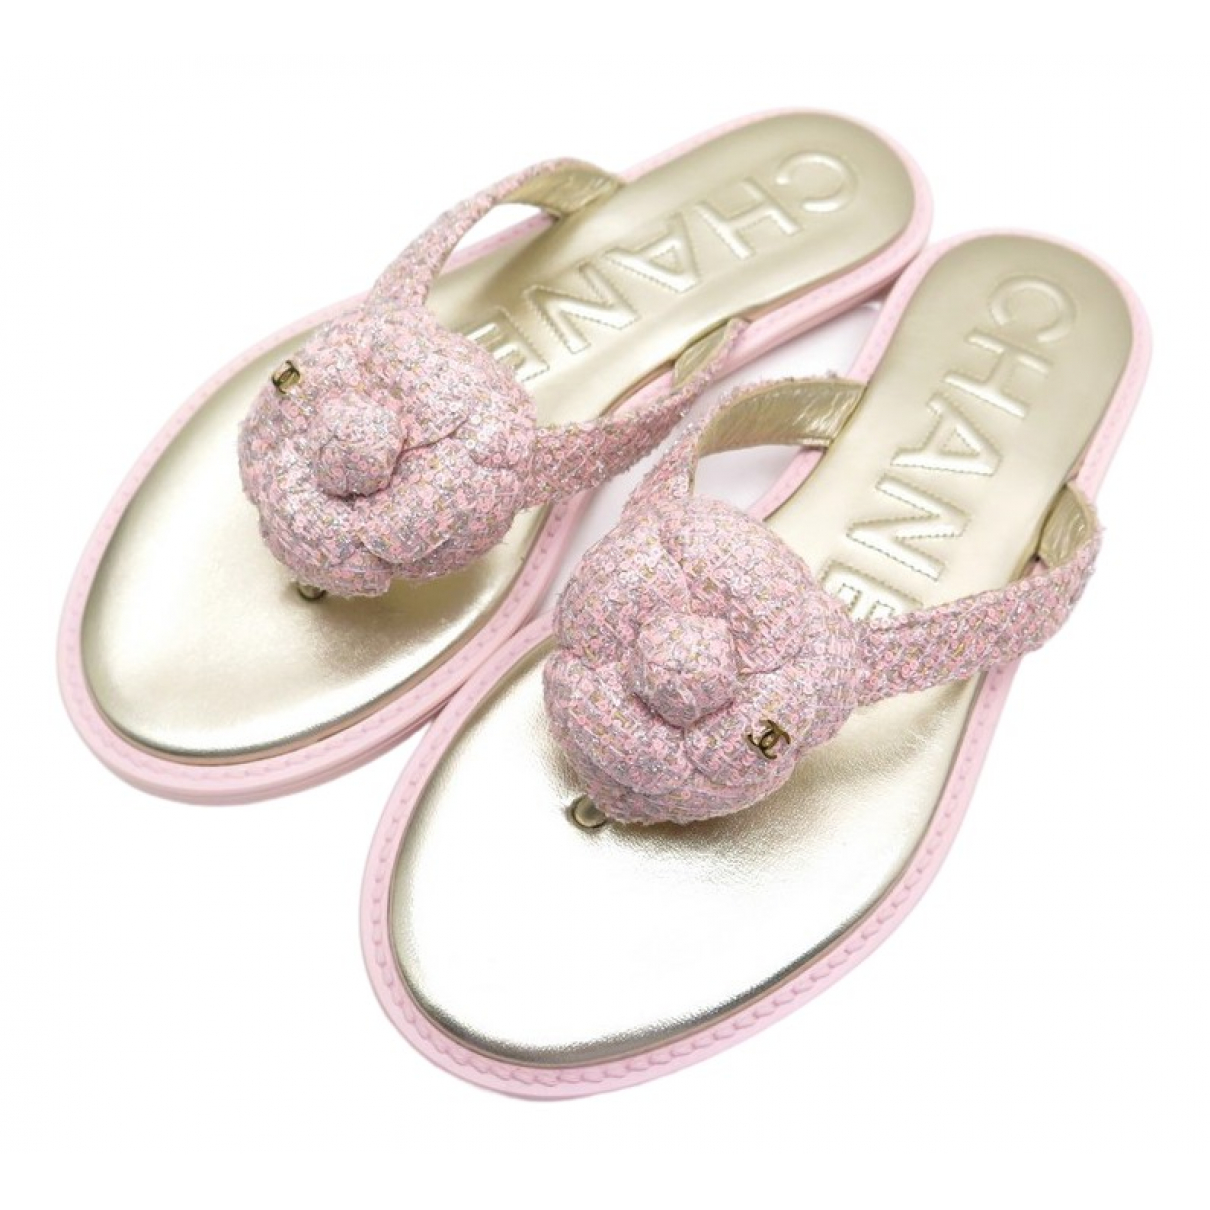 Chanel \N Sandalen in  Rosa Tweed